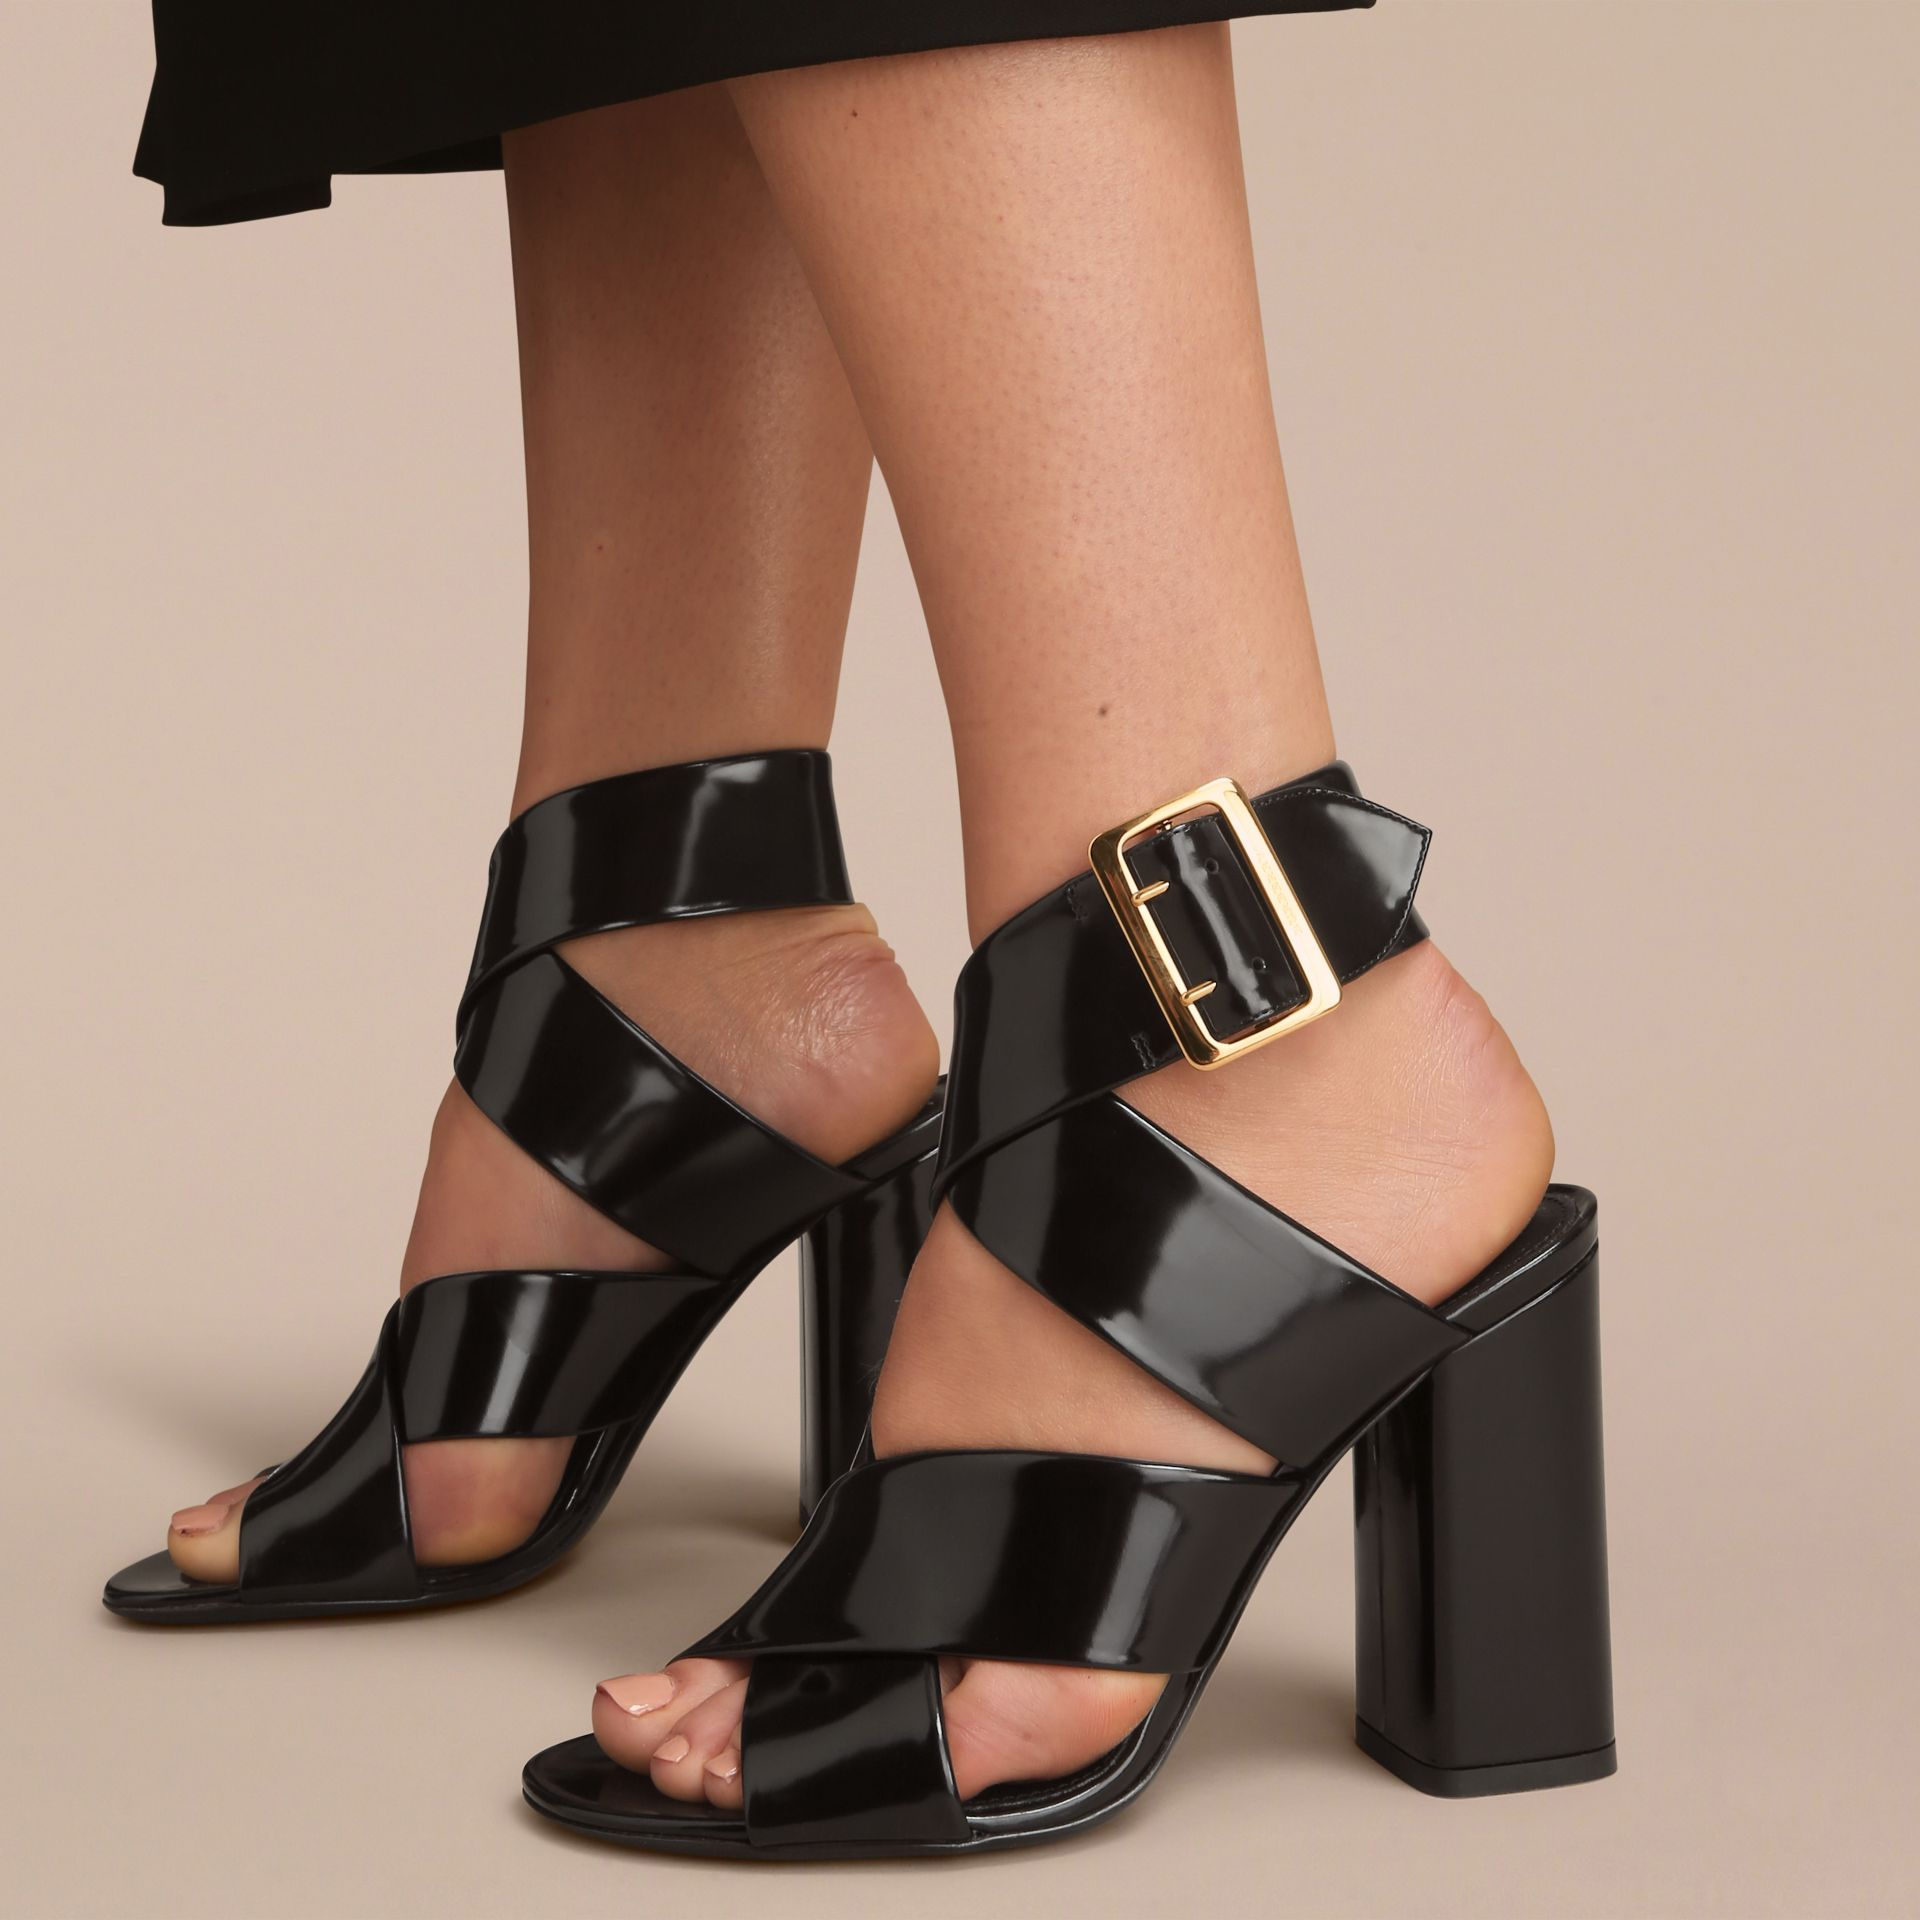 Buckle Detail Patent Leather Sandals in Black - Women | Burberry - gallery image 3